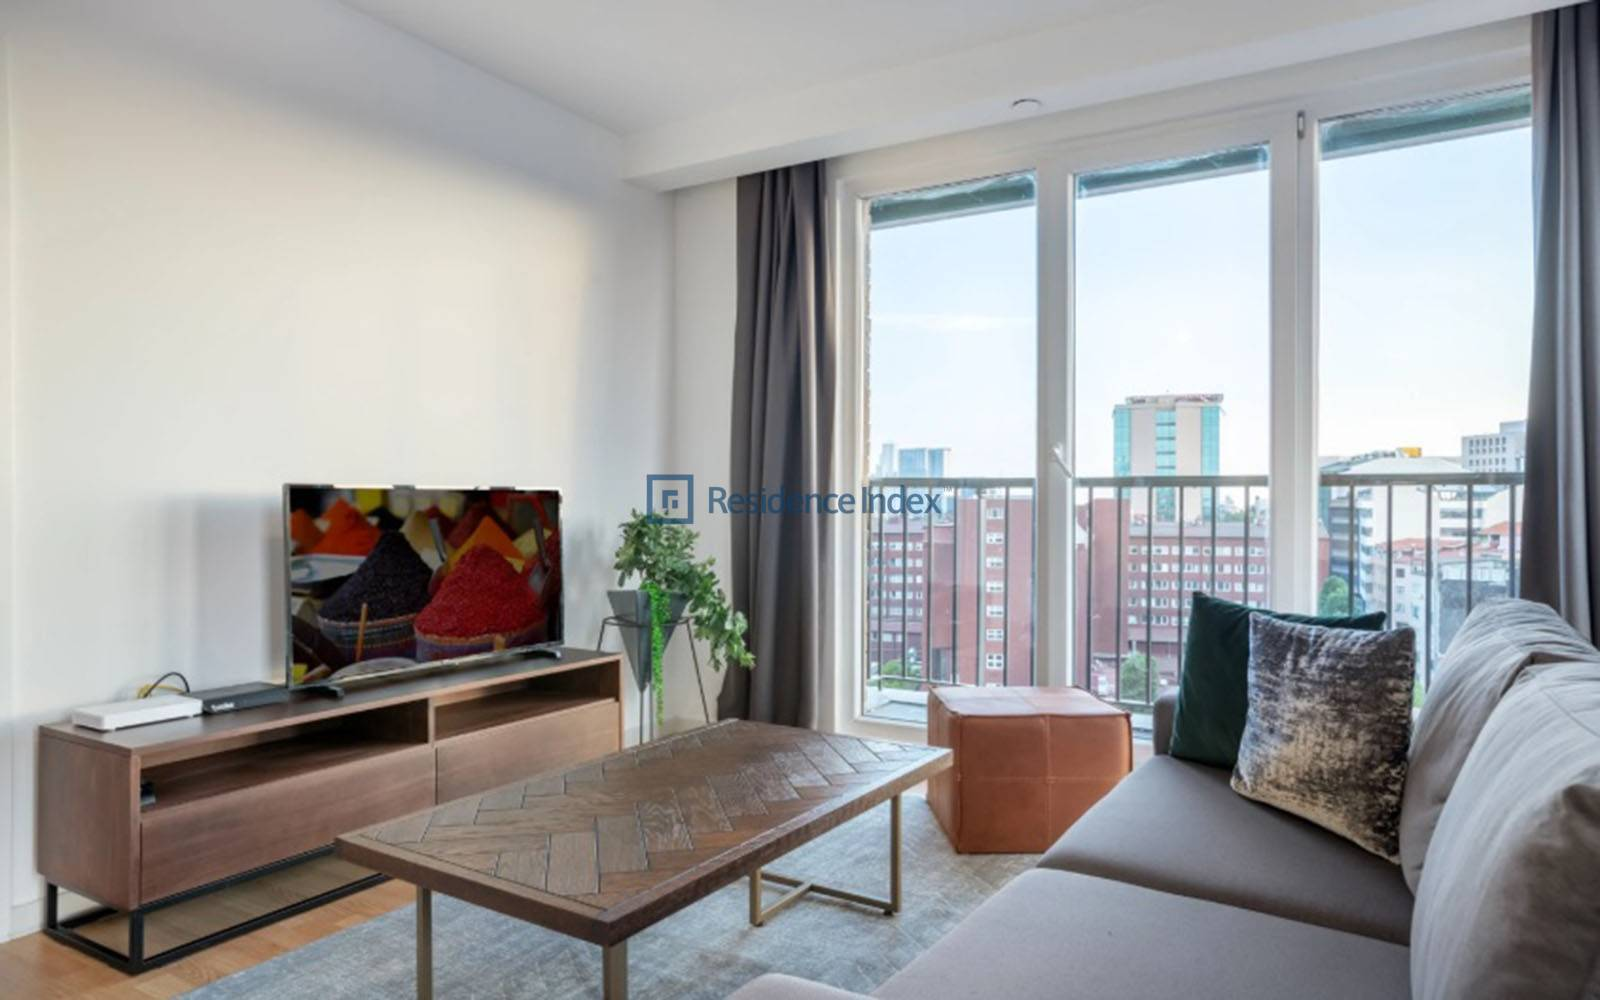 Mint Çağlayan - 1+1 Furnished Apartment For Rent